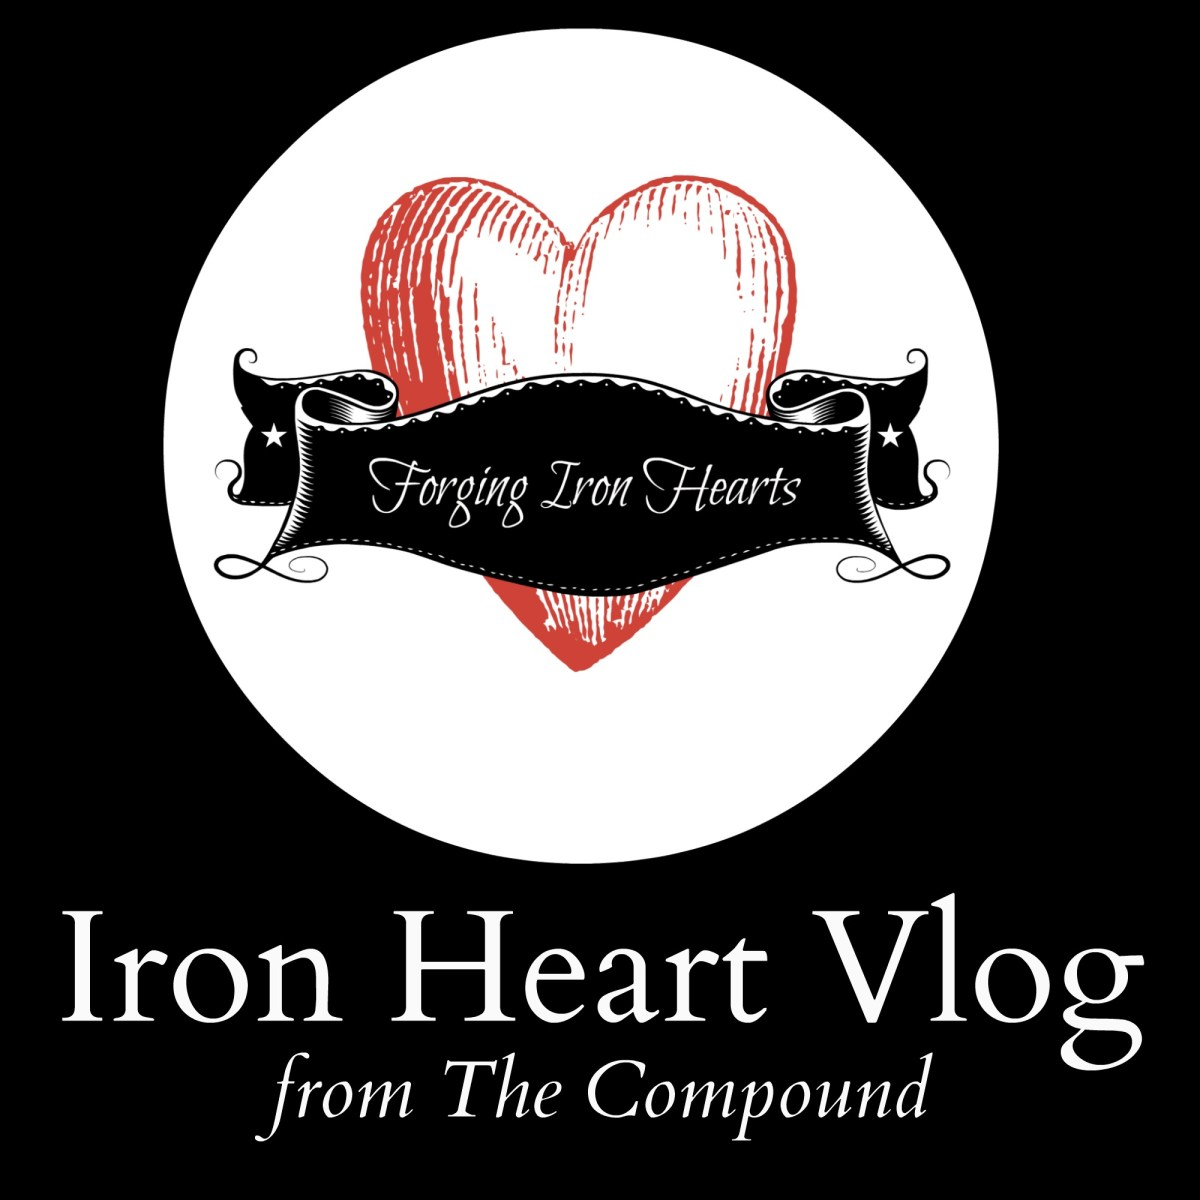 FIRST Iron Heart Vlog from The Compound!